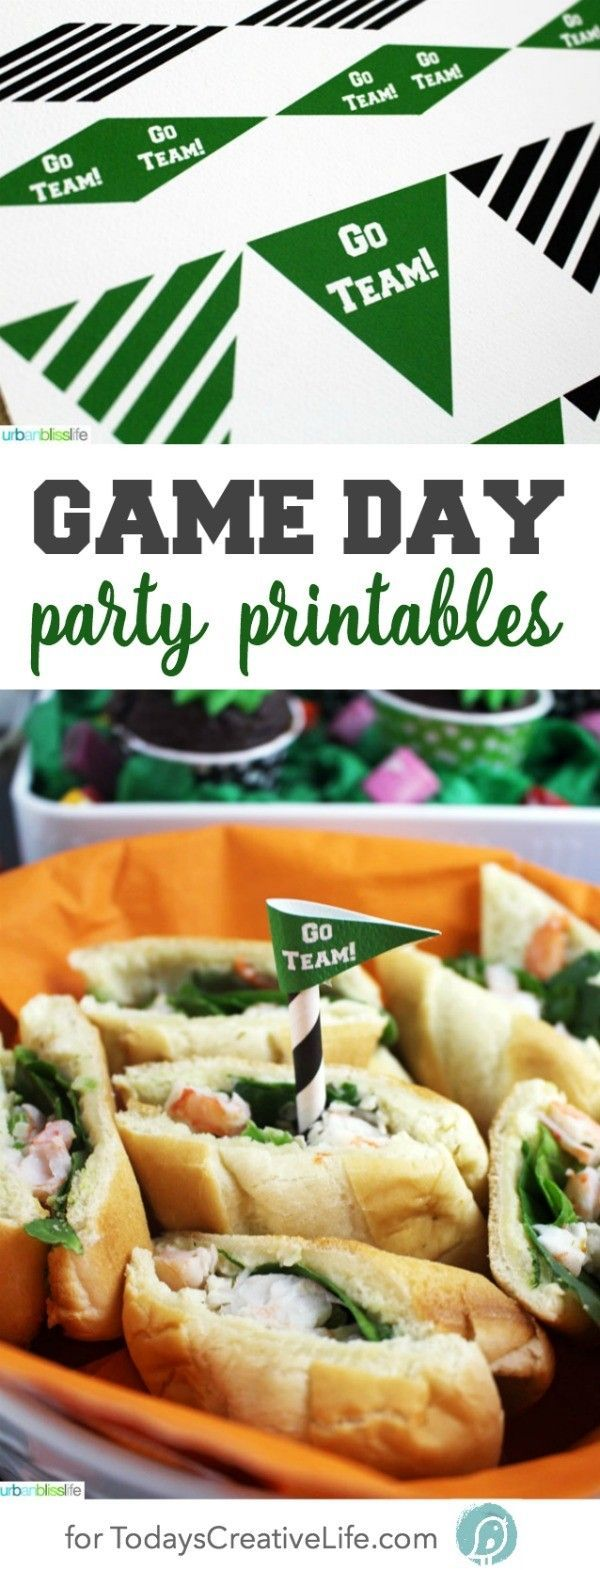 Free Game Day Party Printables | Free printables always make any event better! These football printable are great for all season or for super bowl! Designed by UrbanBlissLife for http://TodaysCreativeLife.com